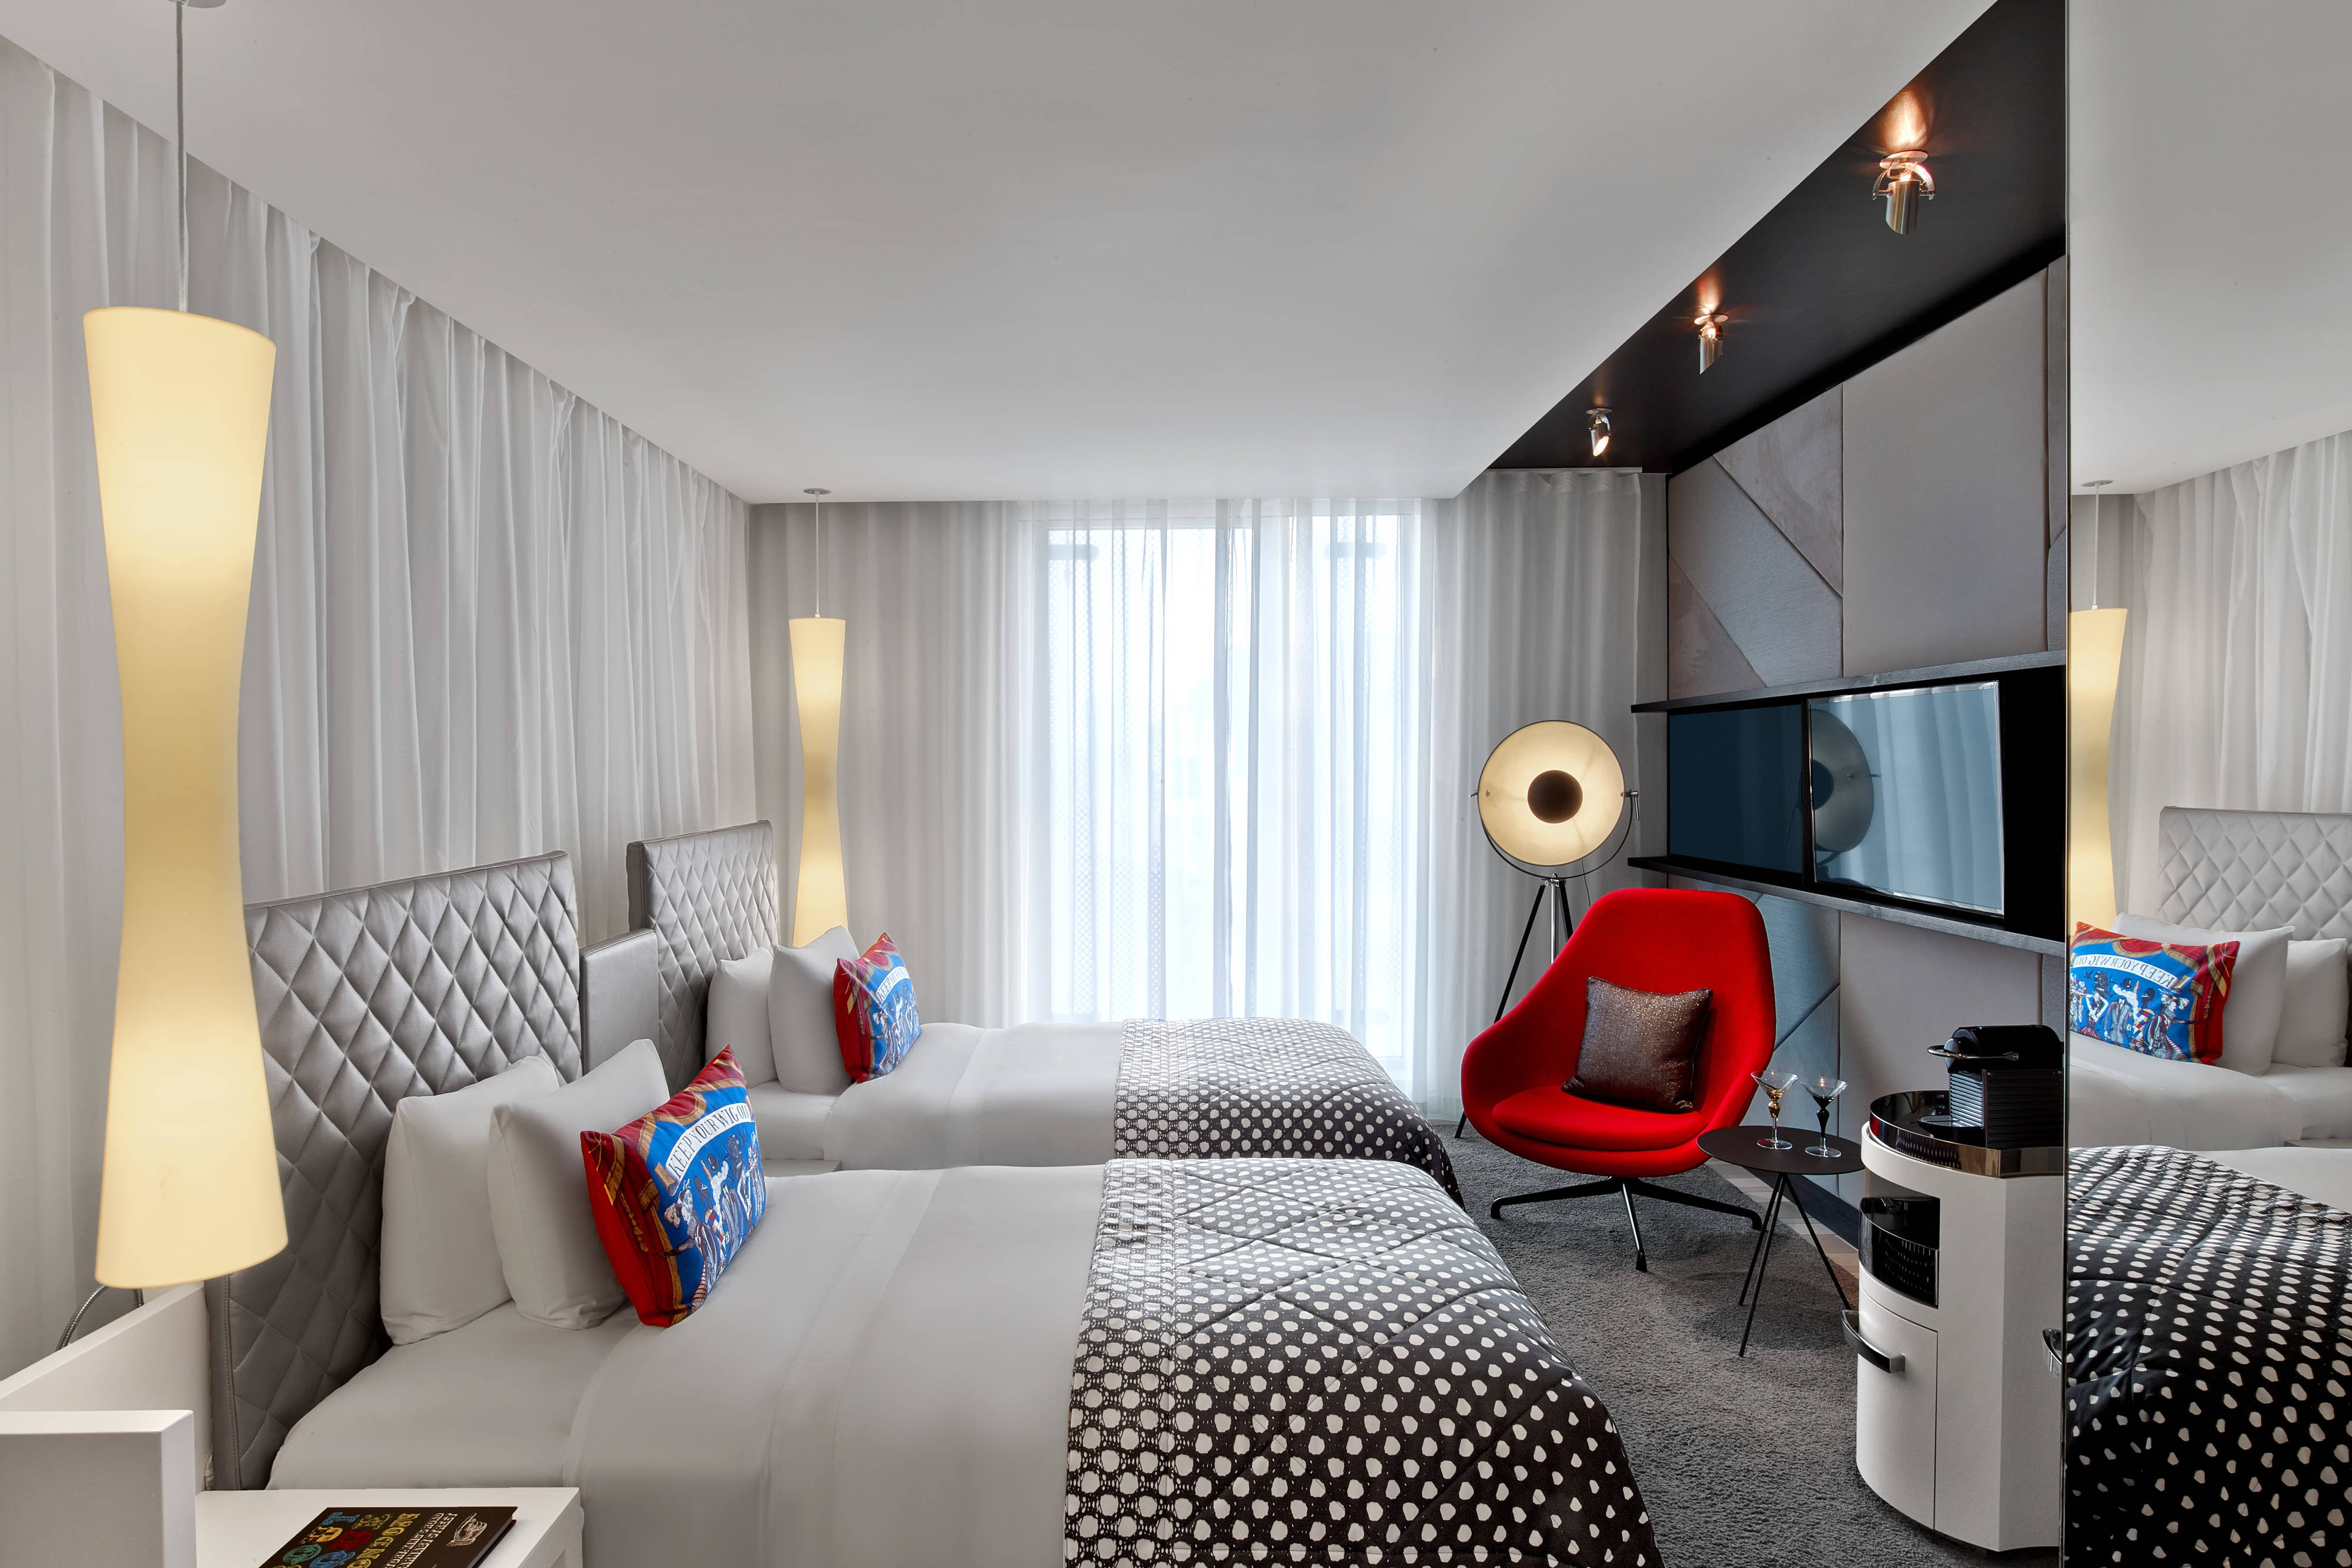 Fabulous Room twin beds